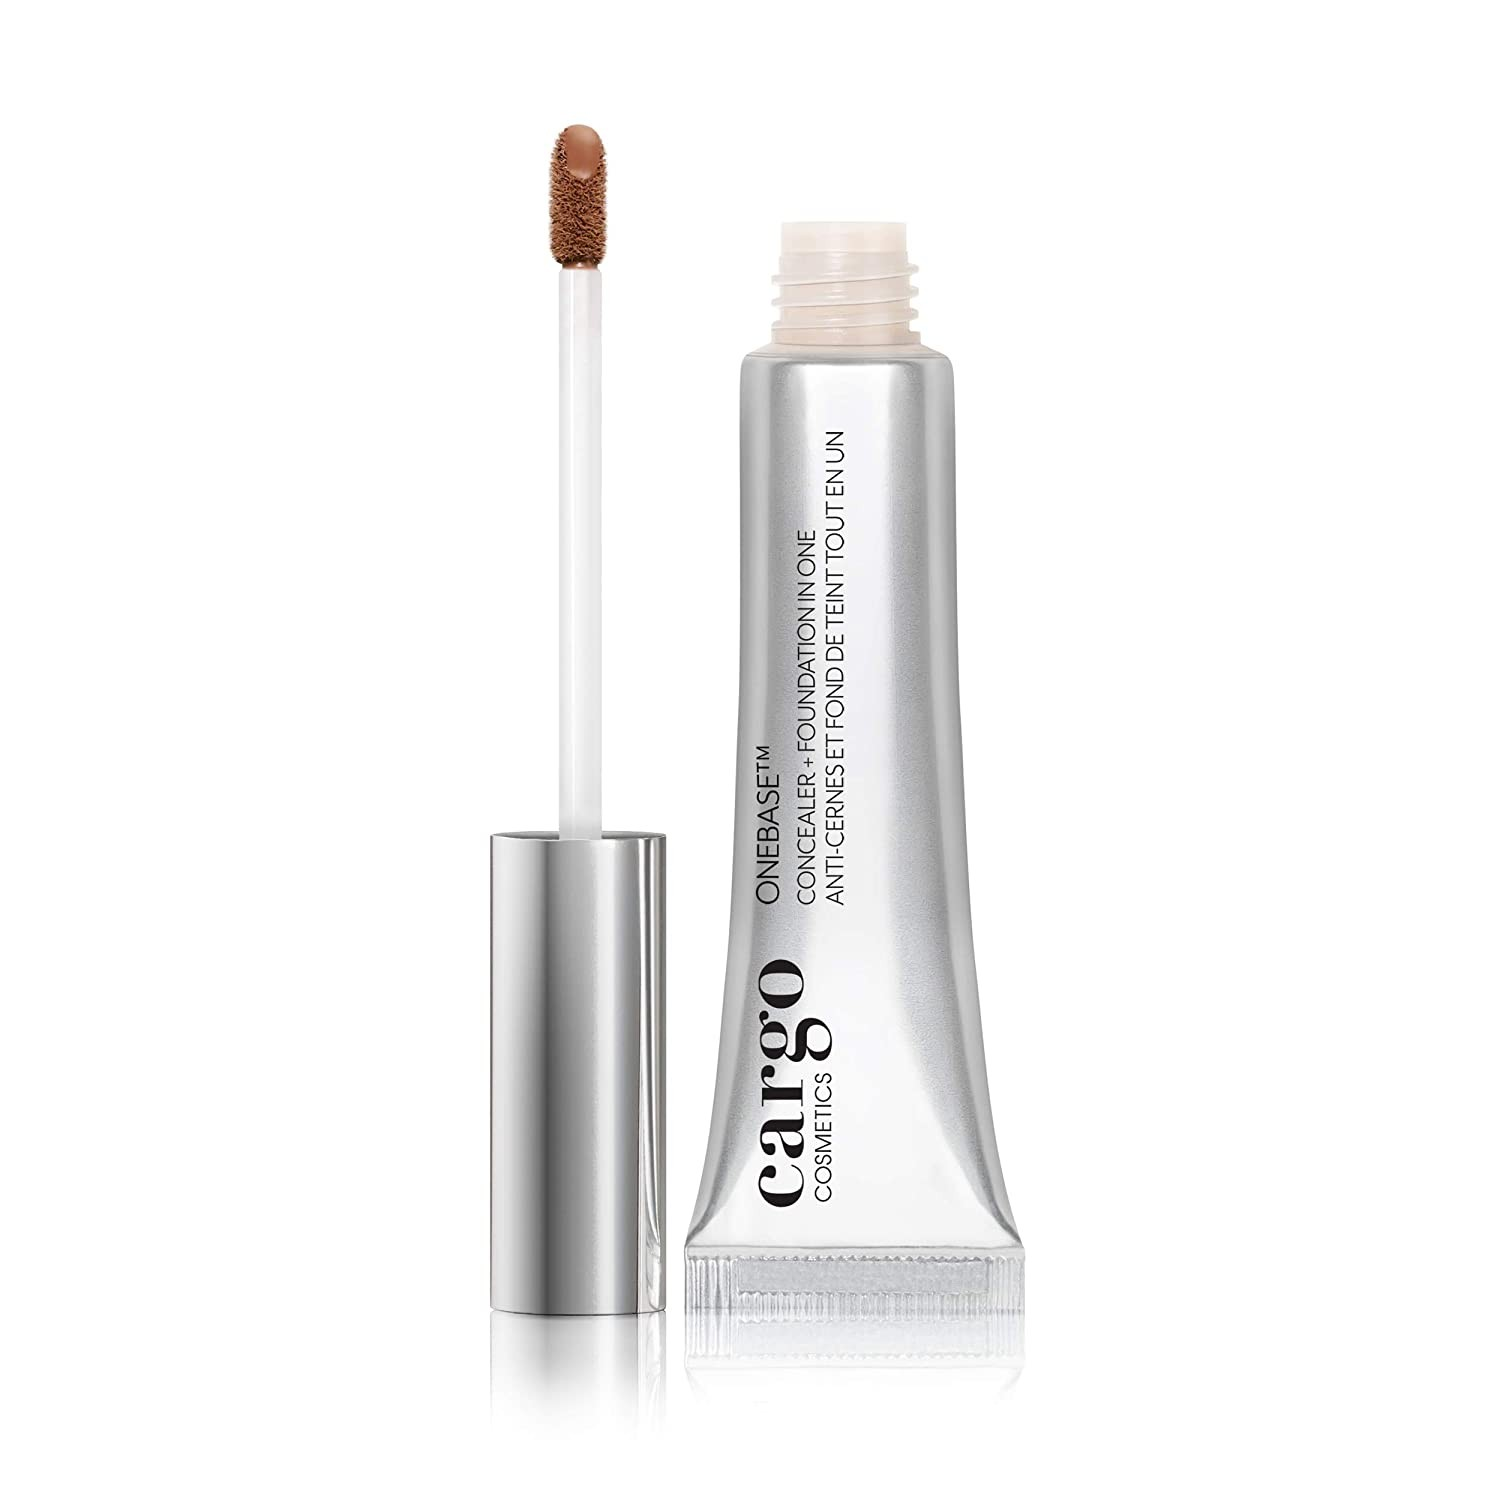 Cargo OneBase Concealer and Foundation in One 05